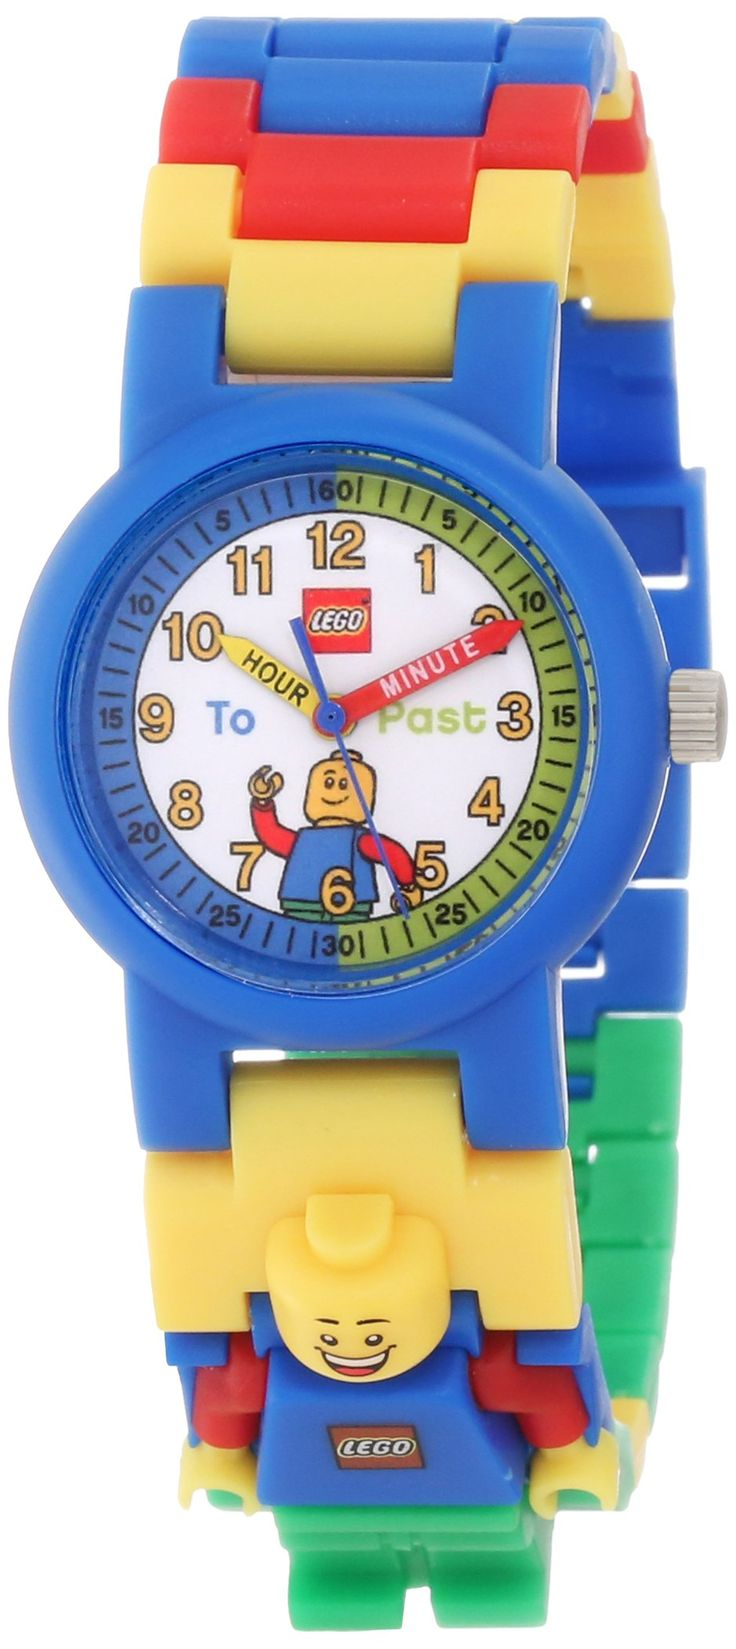 """Amazon.com: LEGO Boys' 9005008 """"Time Teacher"""" Blue Set with Minifigure-Link Watch, Constructible Clock, and Activity Cards: Lego: Watches"""